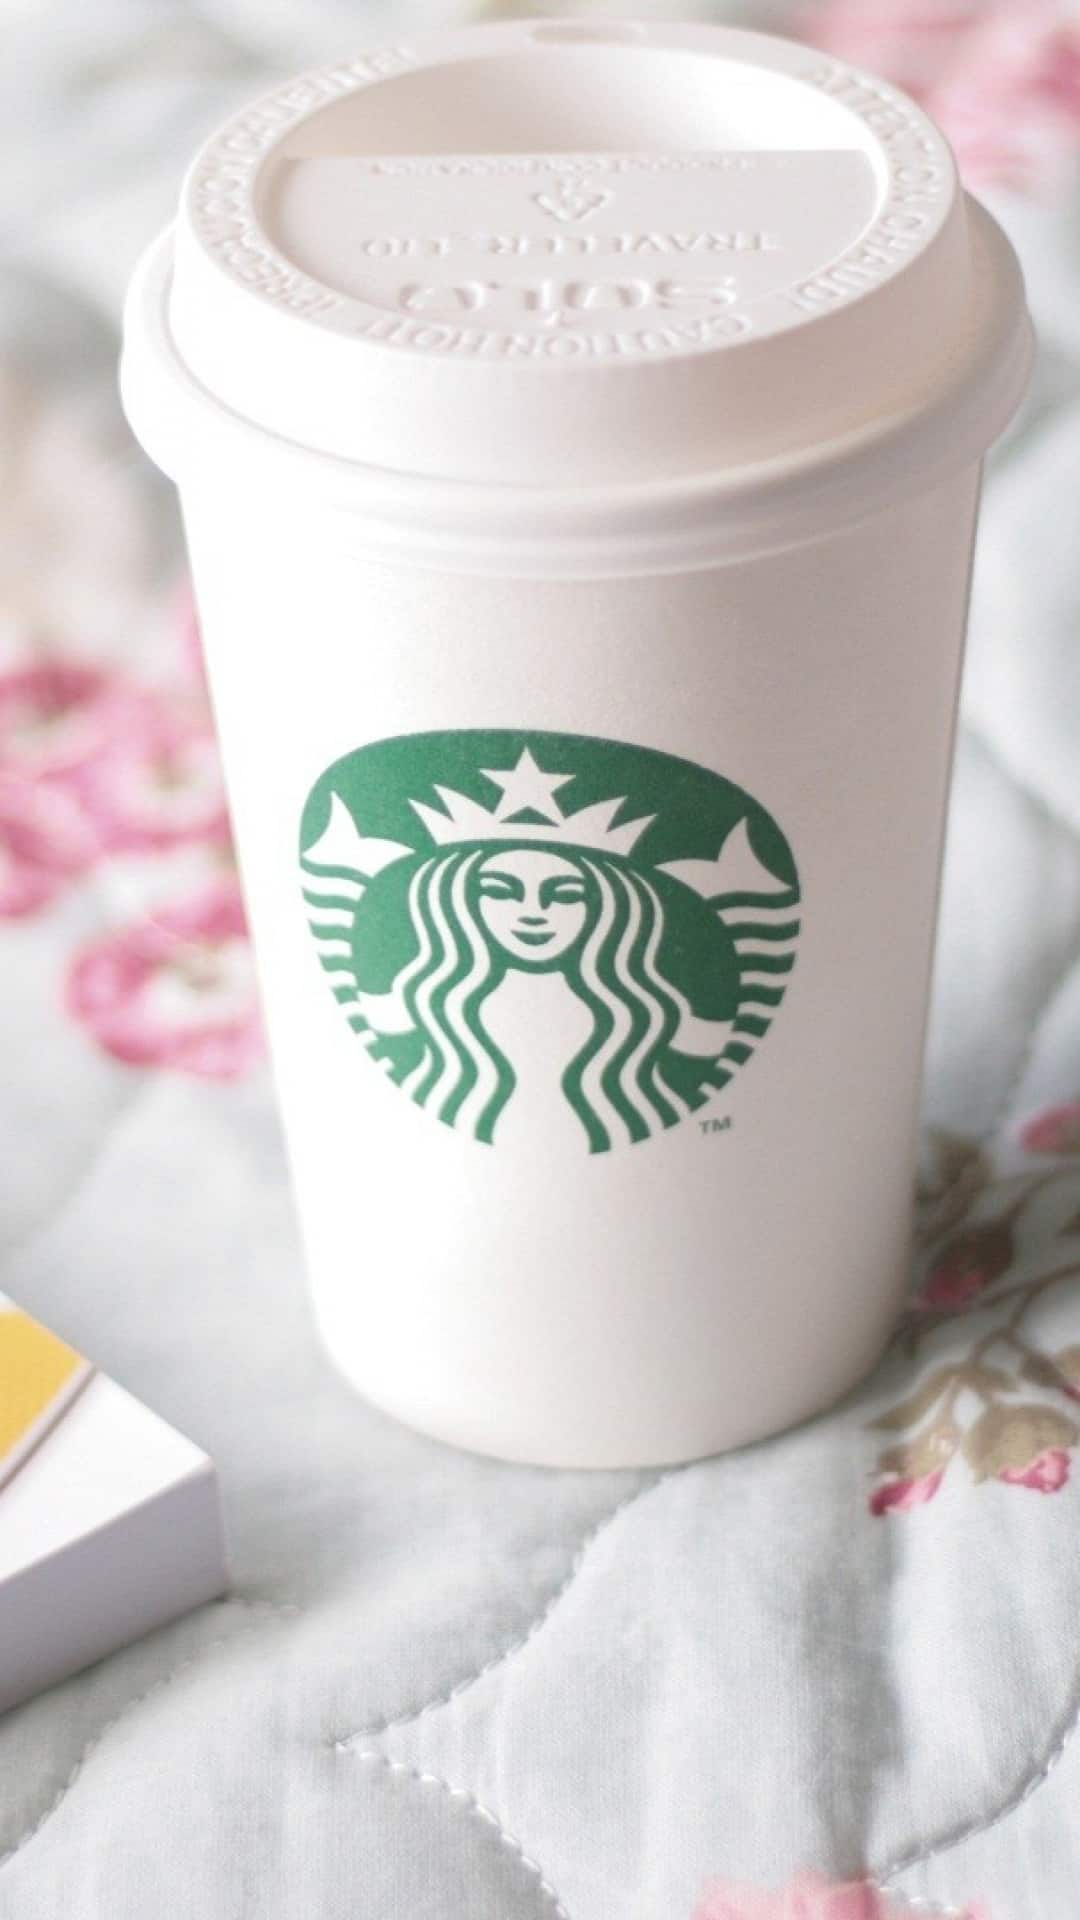 Starbucks Coffee Cup Android Wallpaper